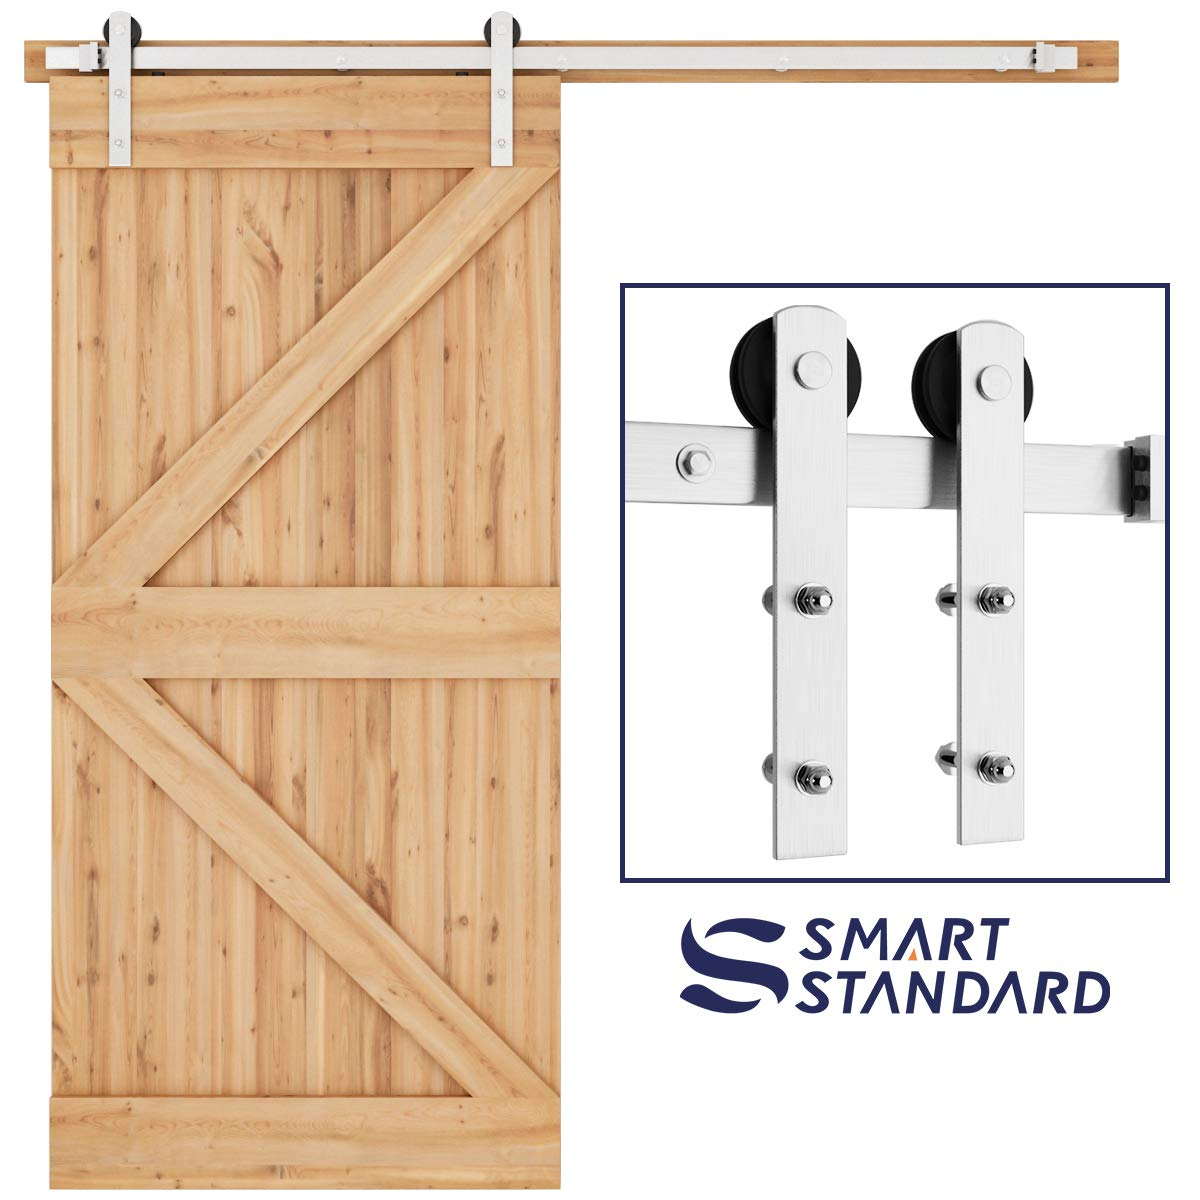 SMARTSTANDARD 6.6ft Nickel Brushed Heavy Duty Sliding Barn Door Hardware Kit, Single Rail, Silver, Super Smoothly and Quietly, Simple and Easy to Install, Fit 36''-40'' Wide DoorPanel (I Shape Hanger)